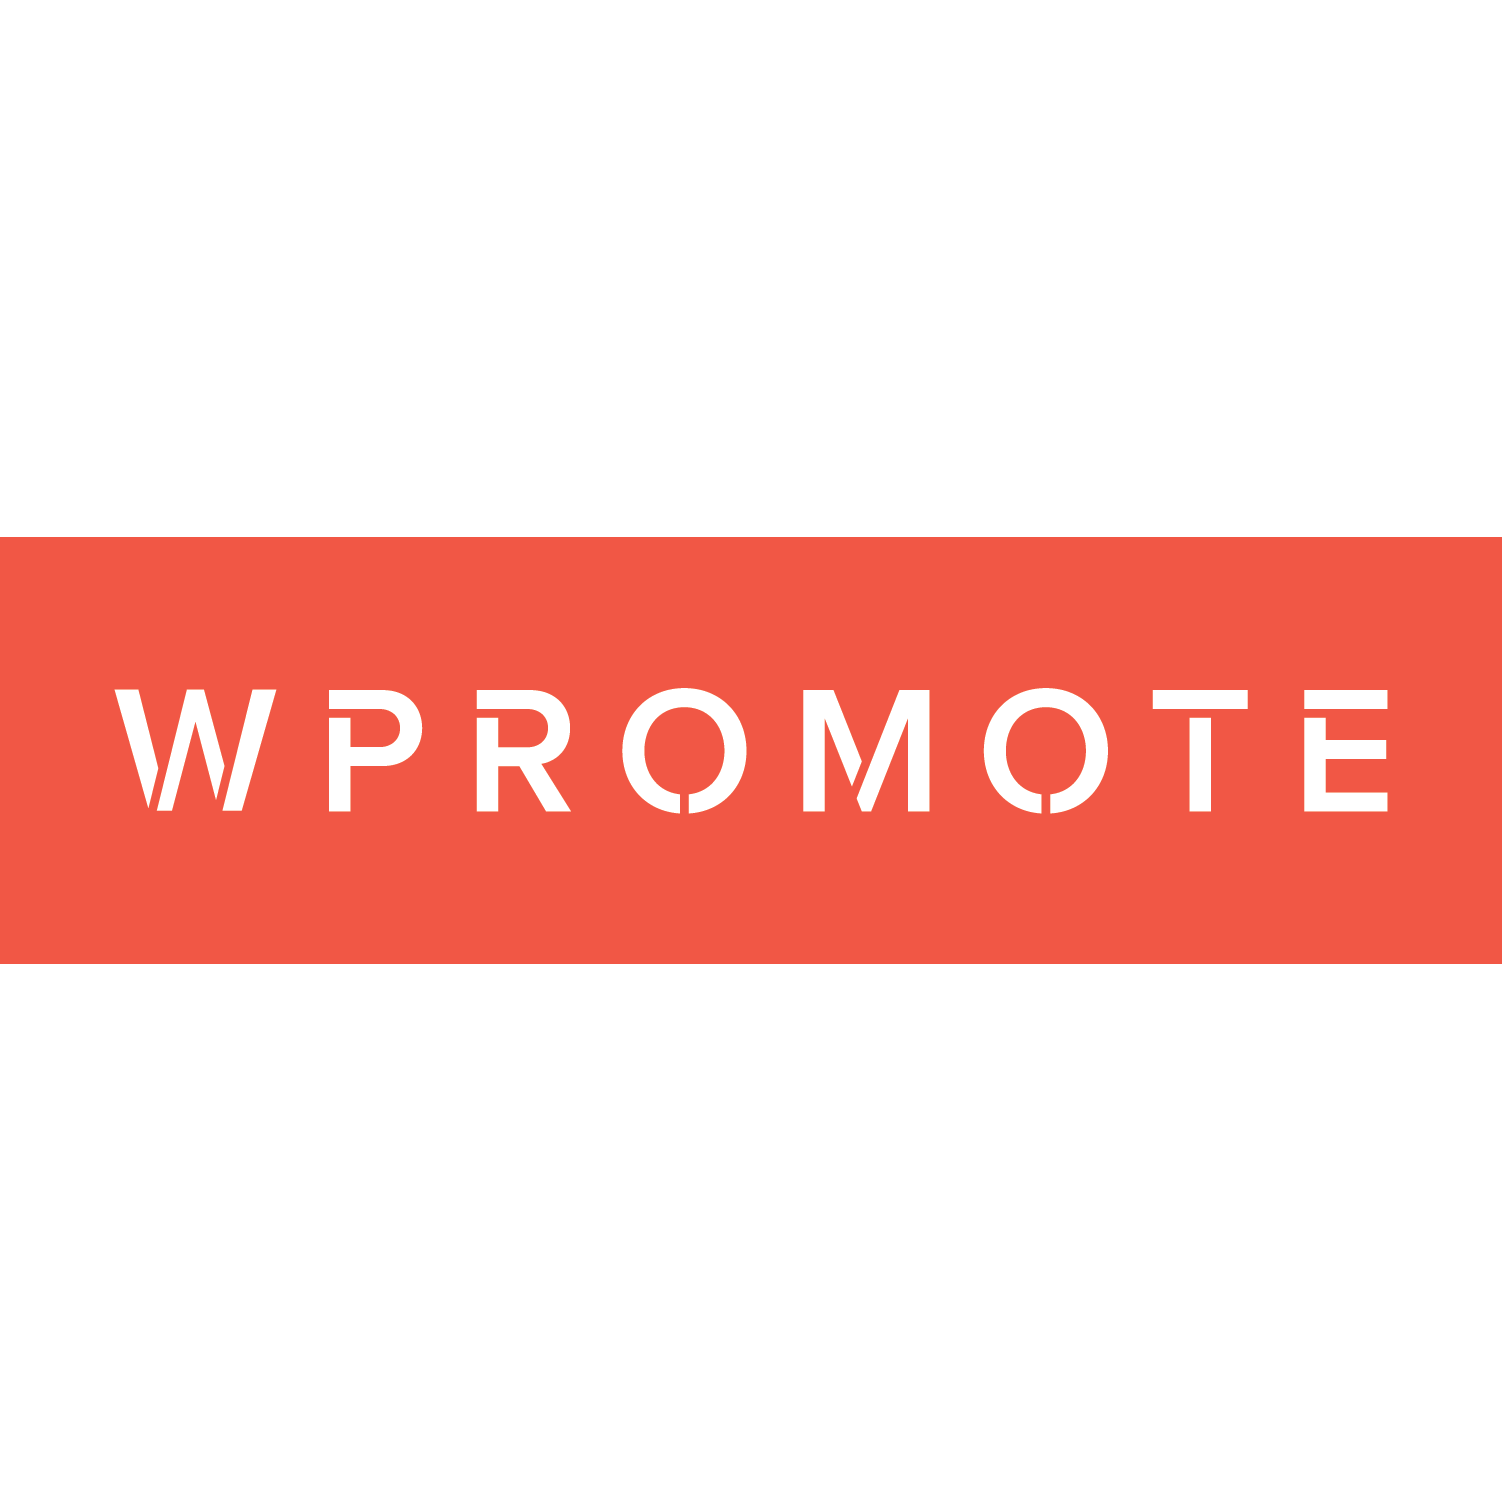 Wpromote (Formerly Standing Dog Interactive)